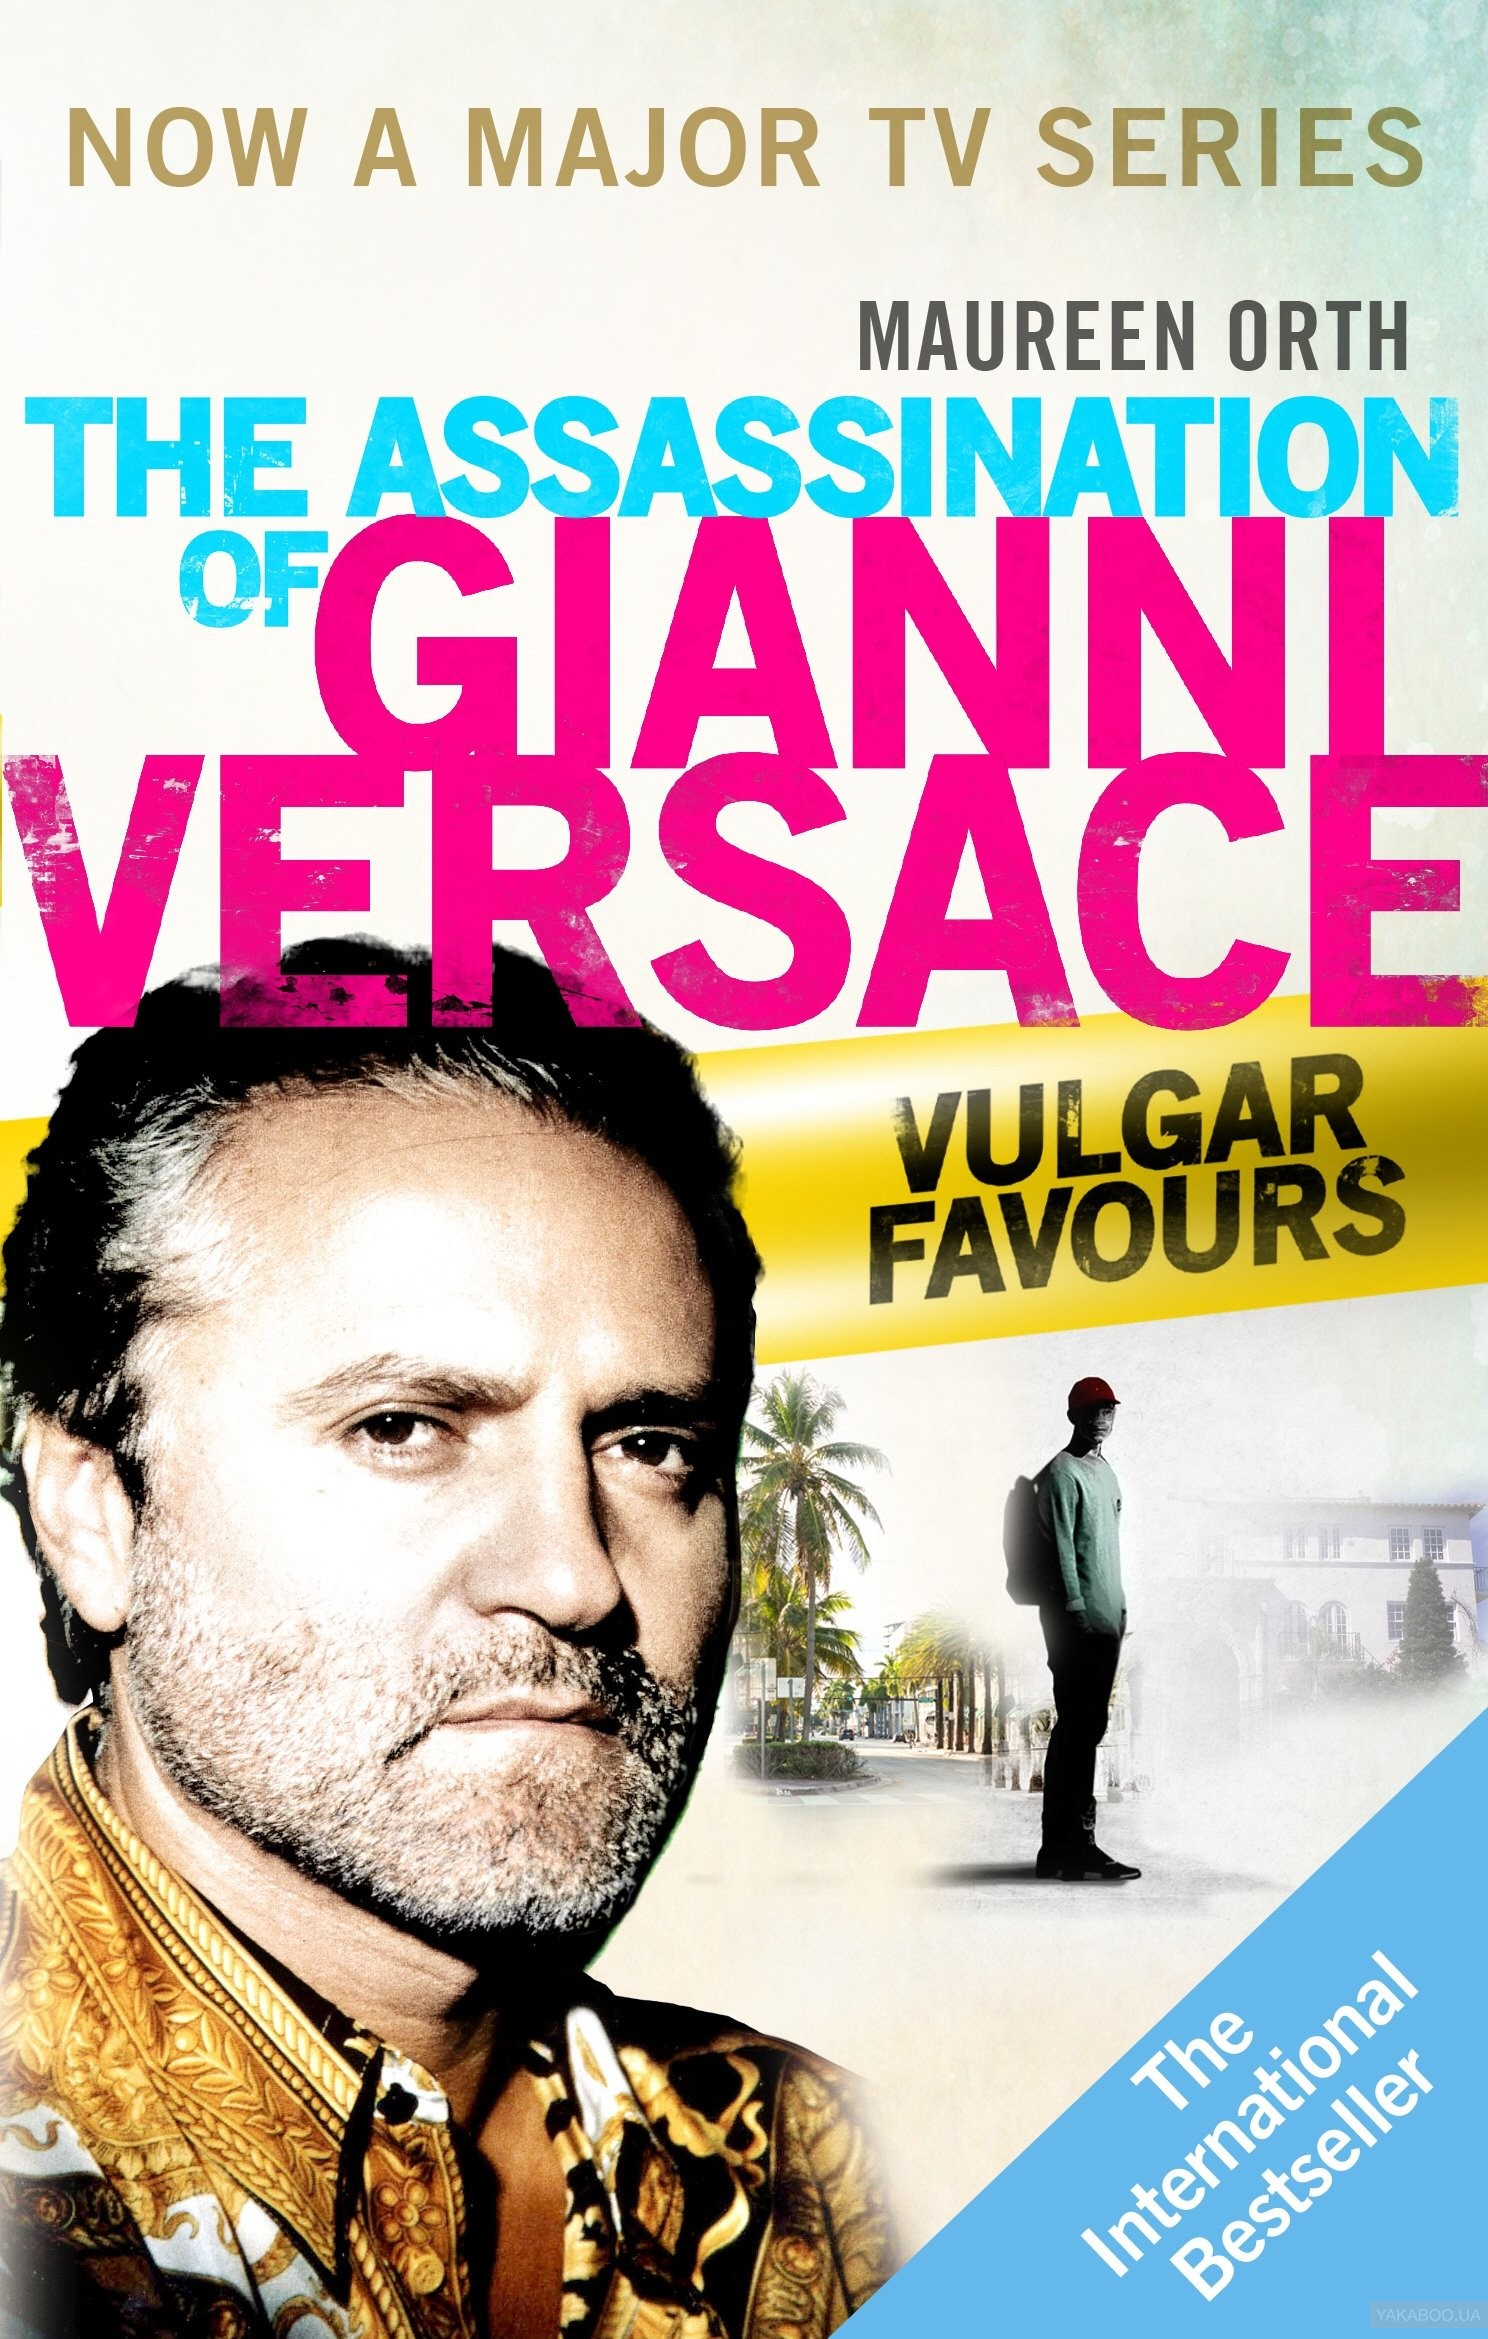 Vulgar favours. the assassination of gianni